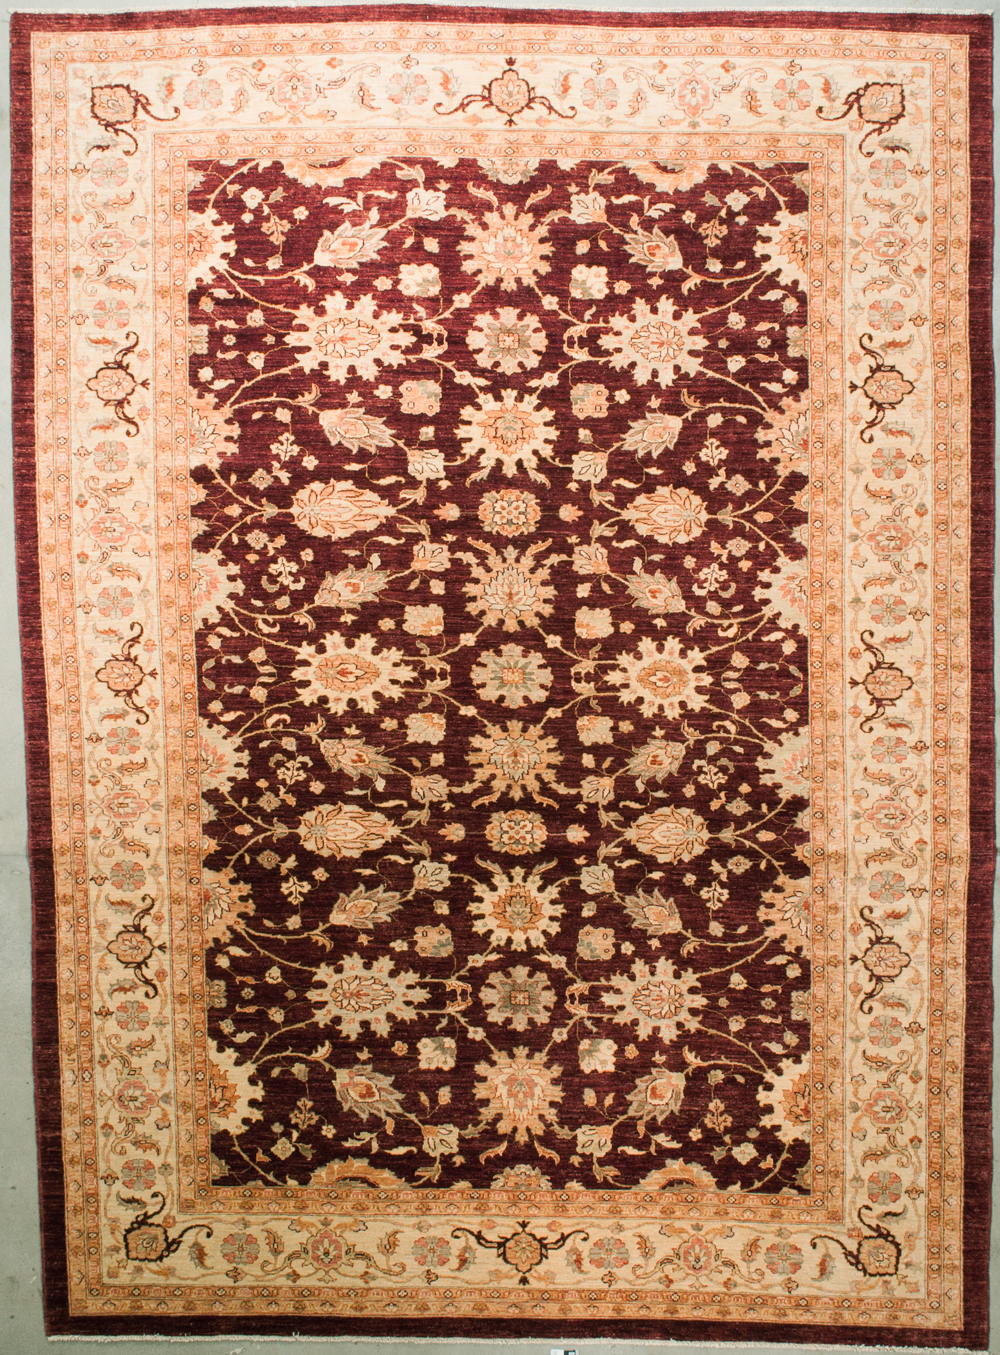 Finest Ziegler & Co. Usak Rugs and more oriental carpet 35467-